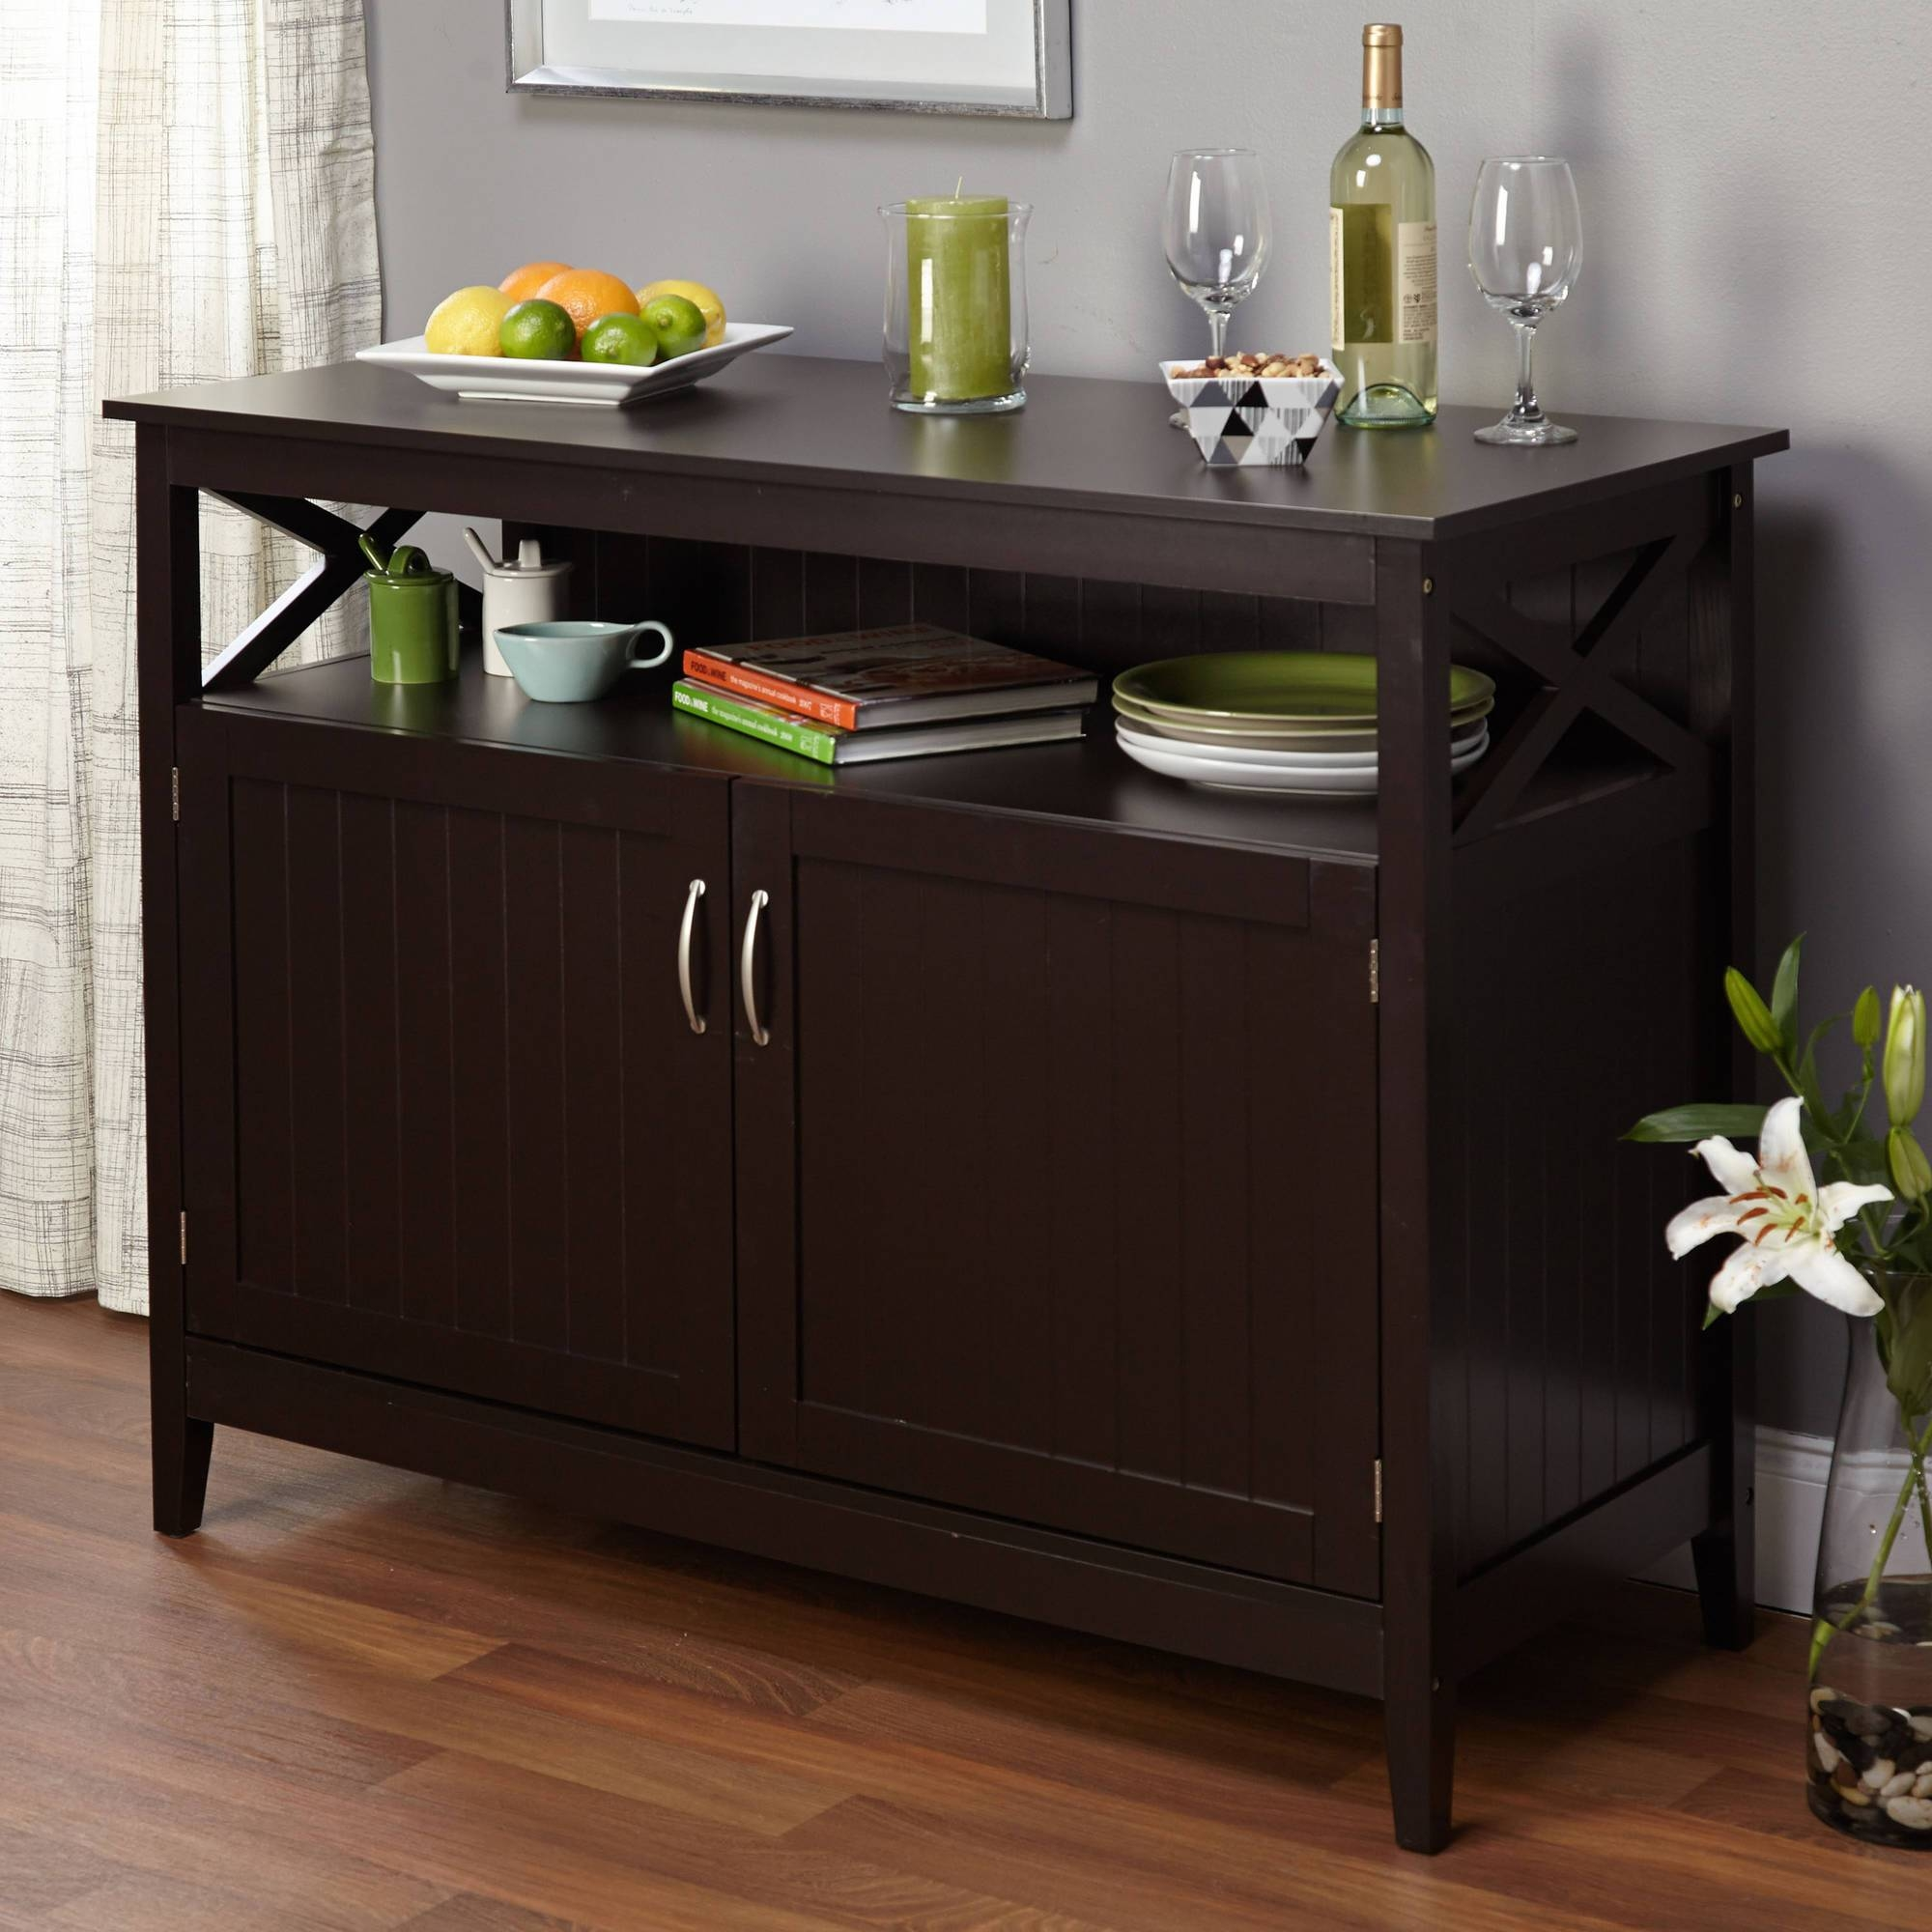 New Sideboard Buffet Server – Bjdgjy Within Most Up To Date Sideboard Buffet Servers (#9 of 15)